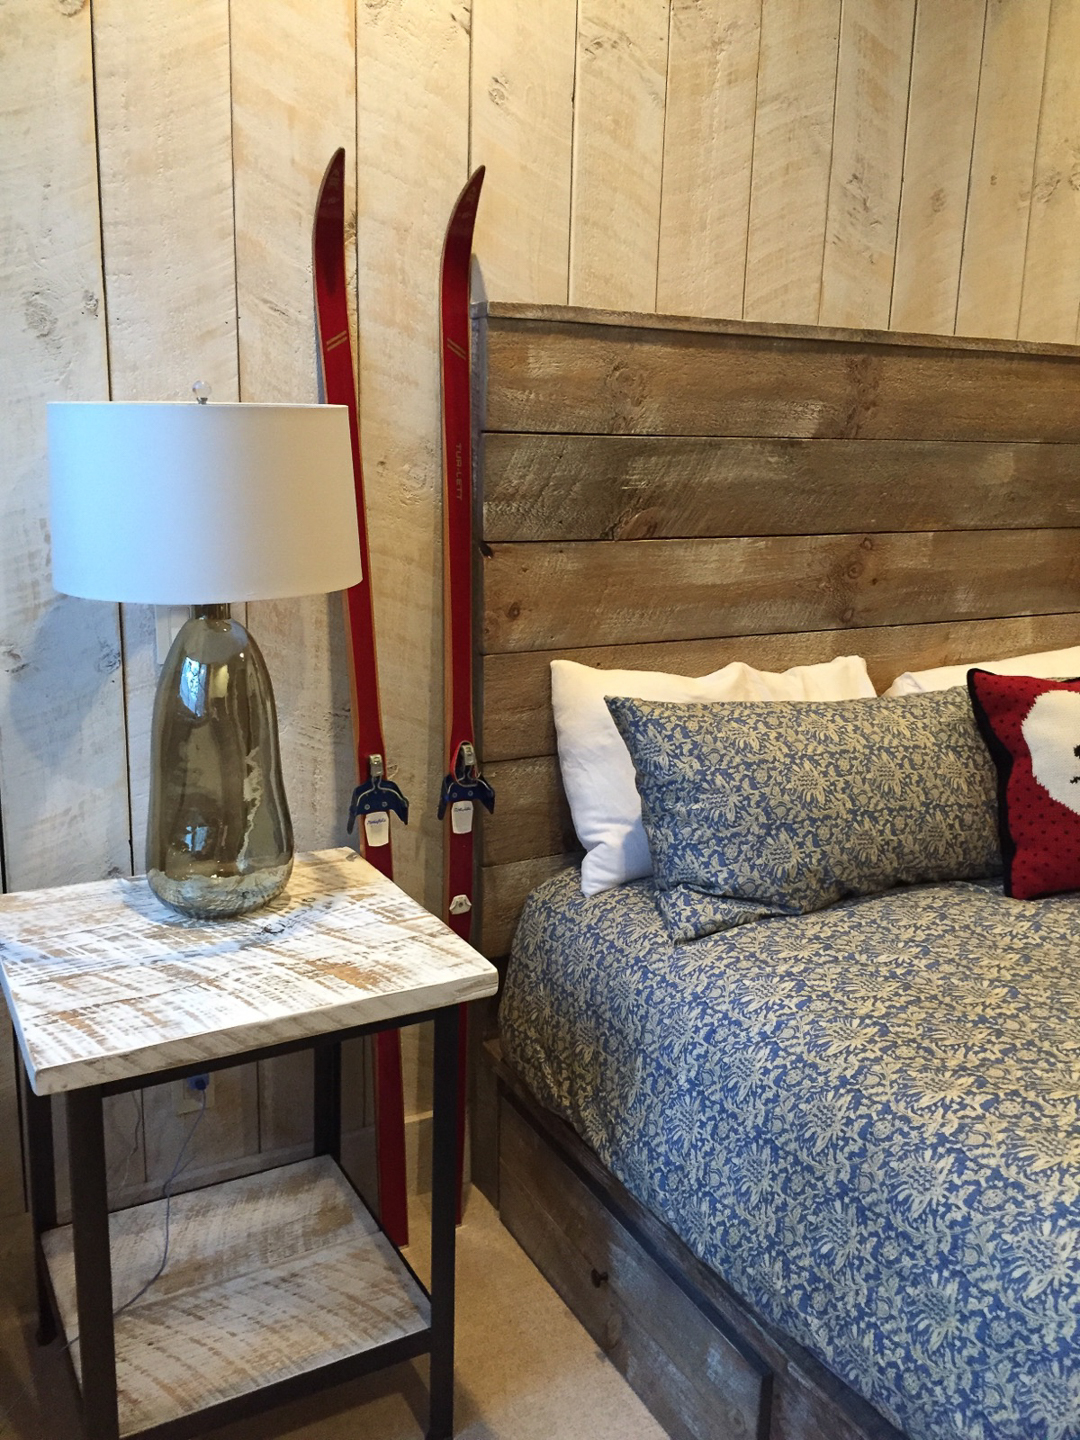 plans full brown size knotty headboards ideas with pine honey unfinished beds antique of light dark king argos drawers queen wood storage headboard stained